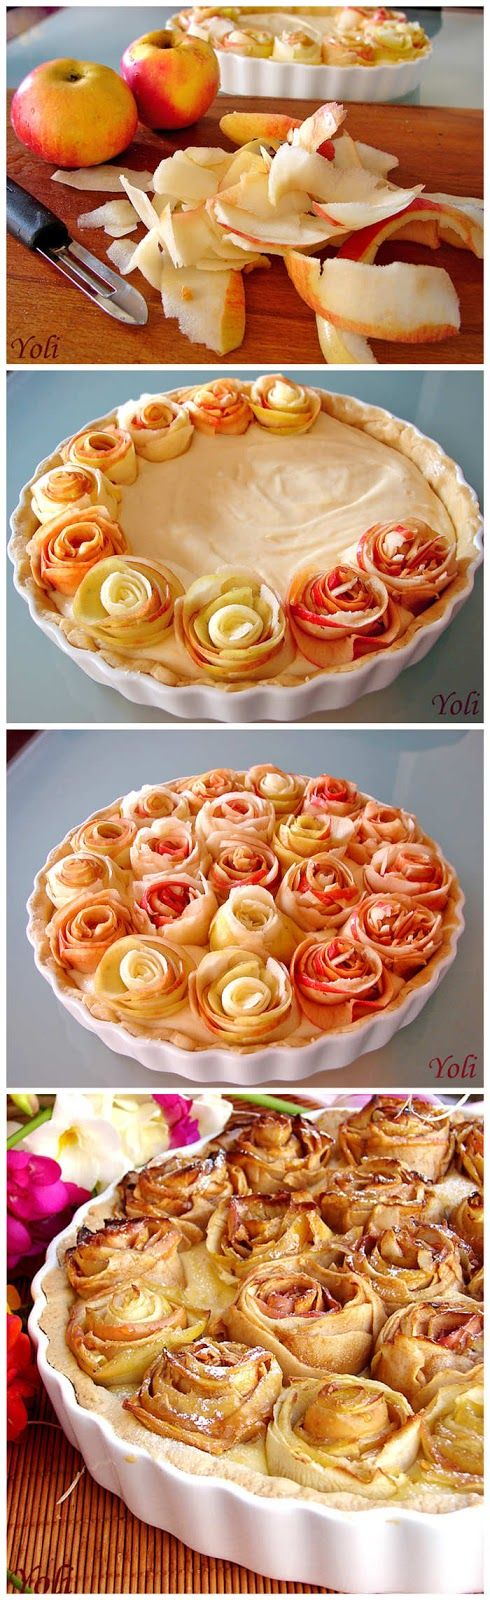 Apple pie with roses - So pretty!